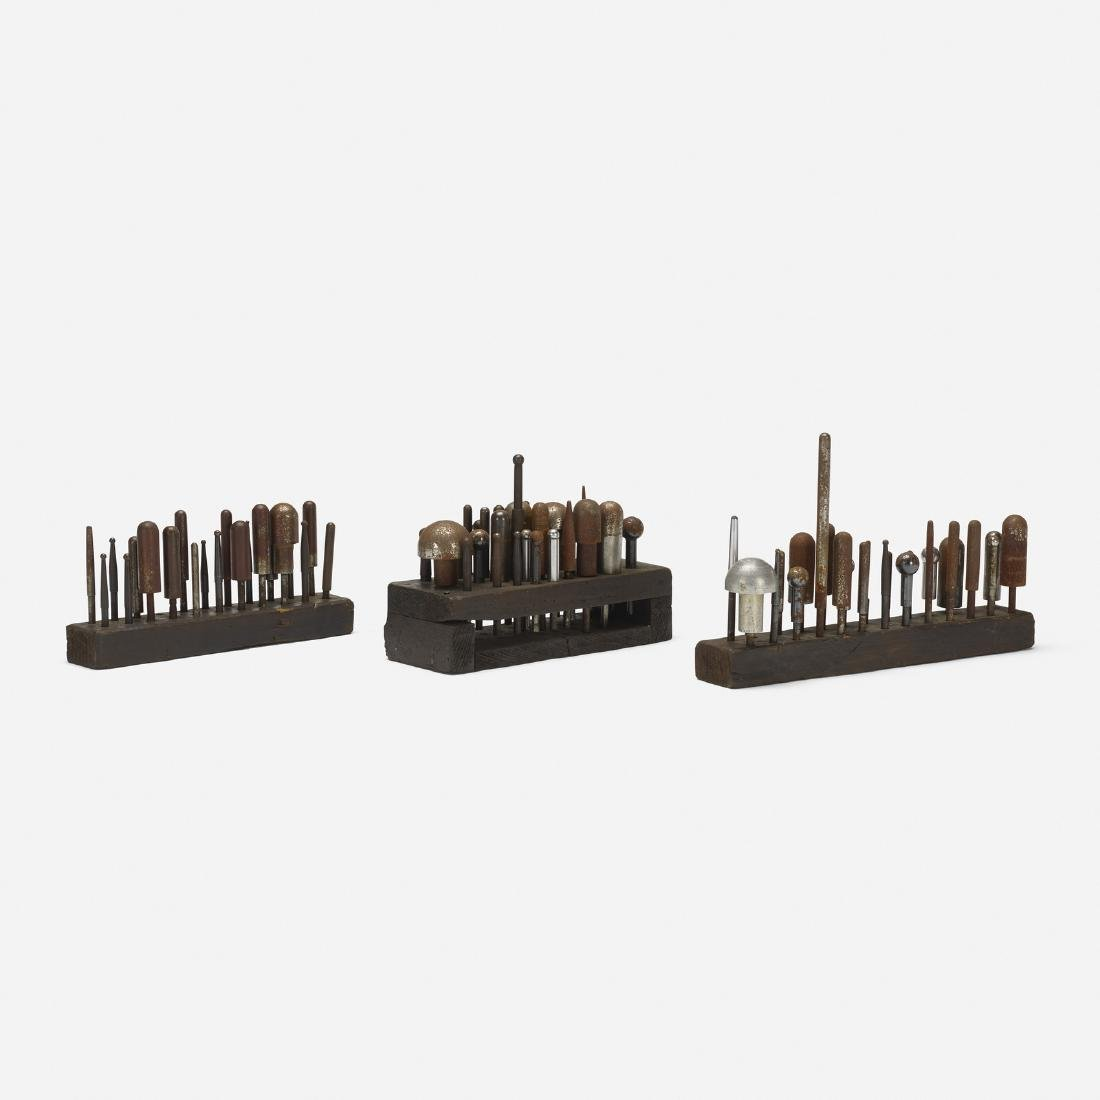 19th Century, collection of metal working tools